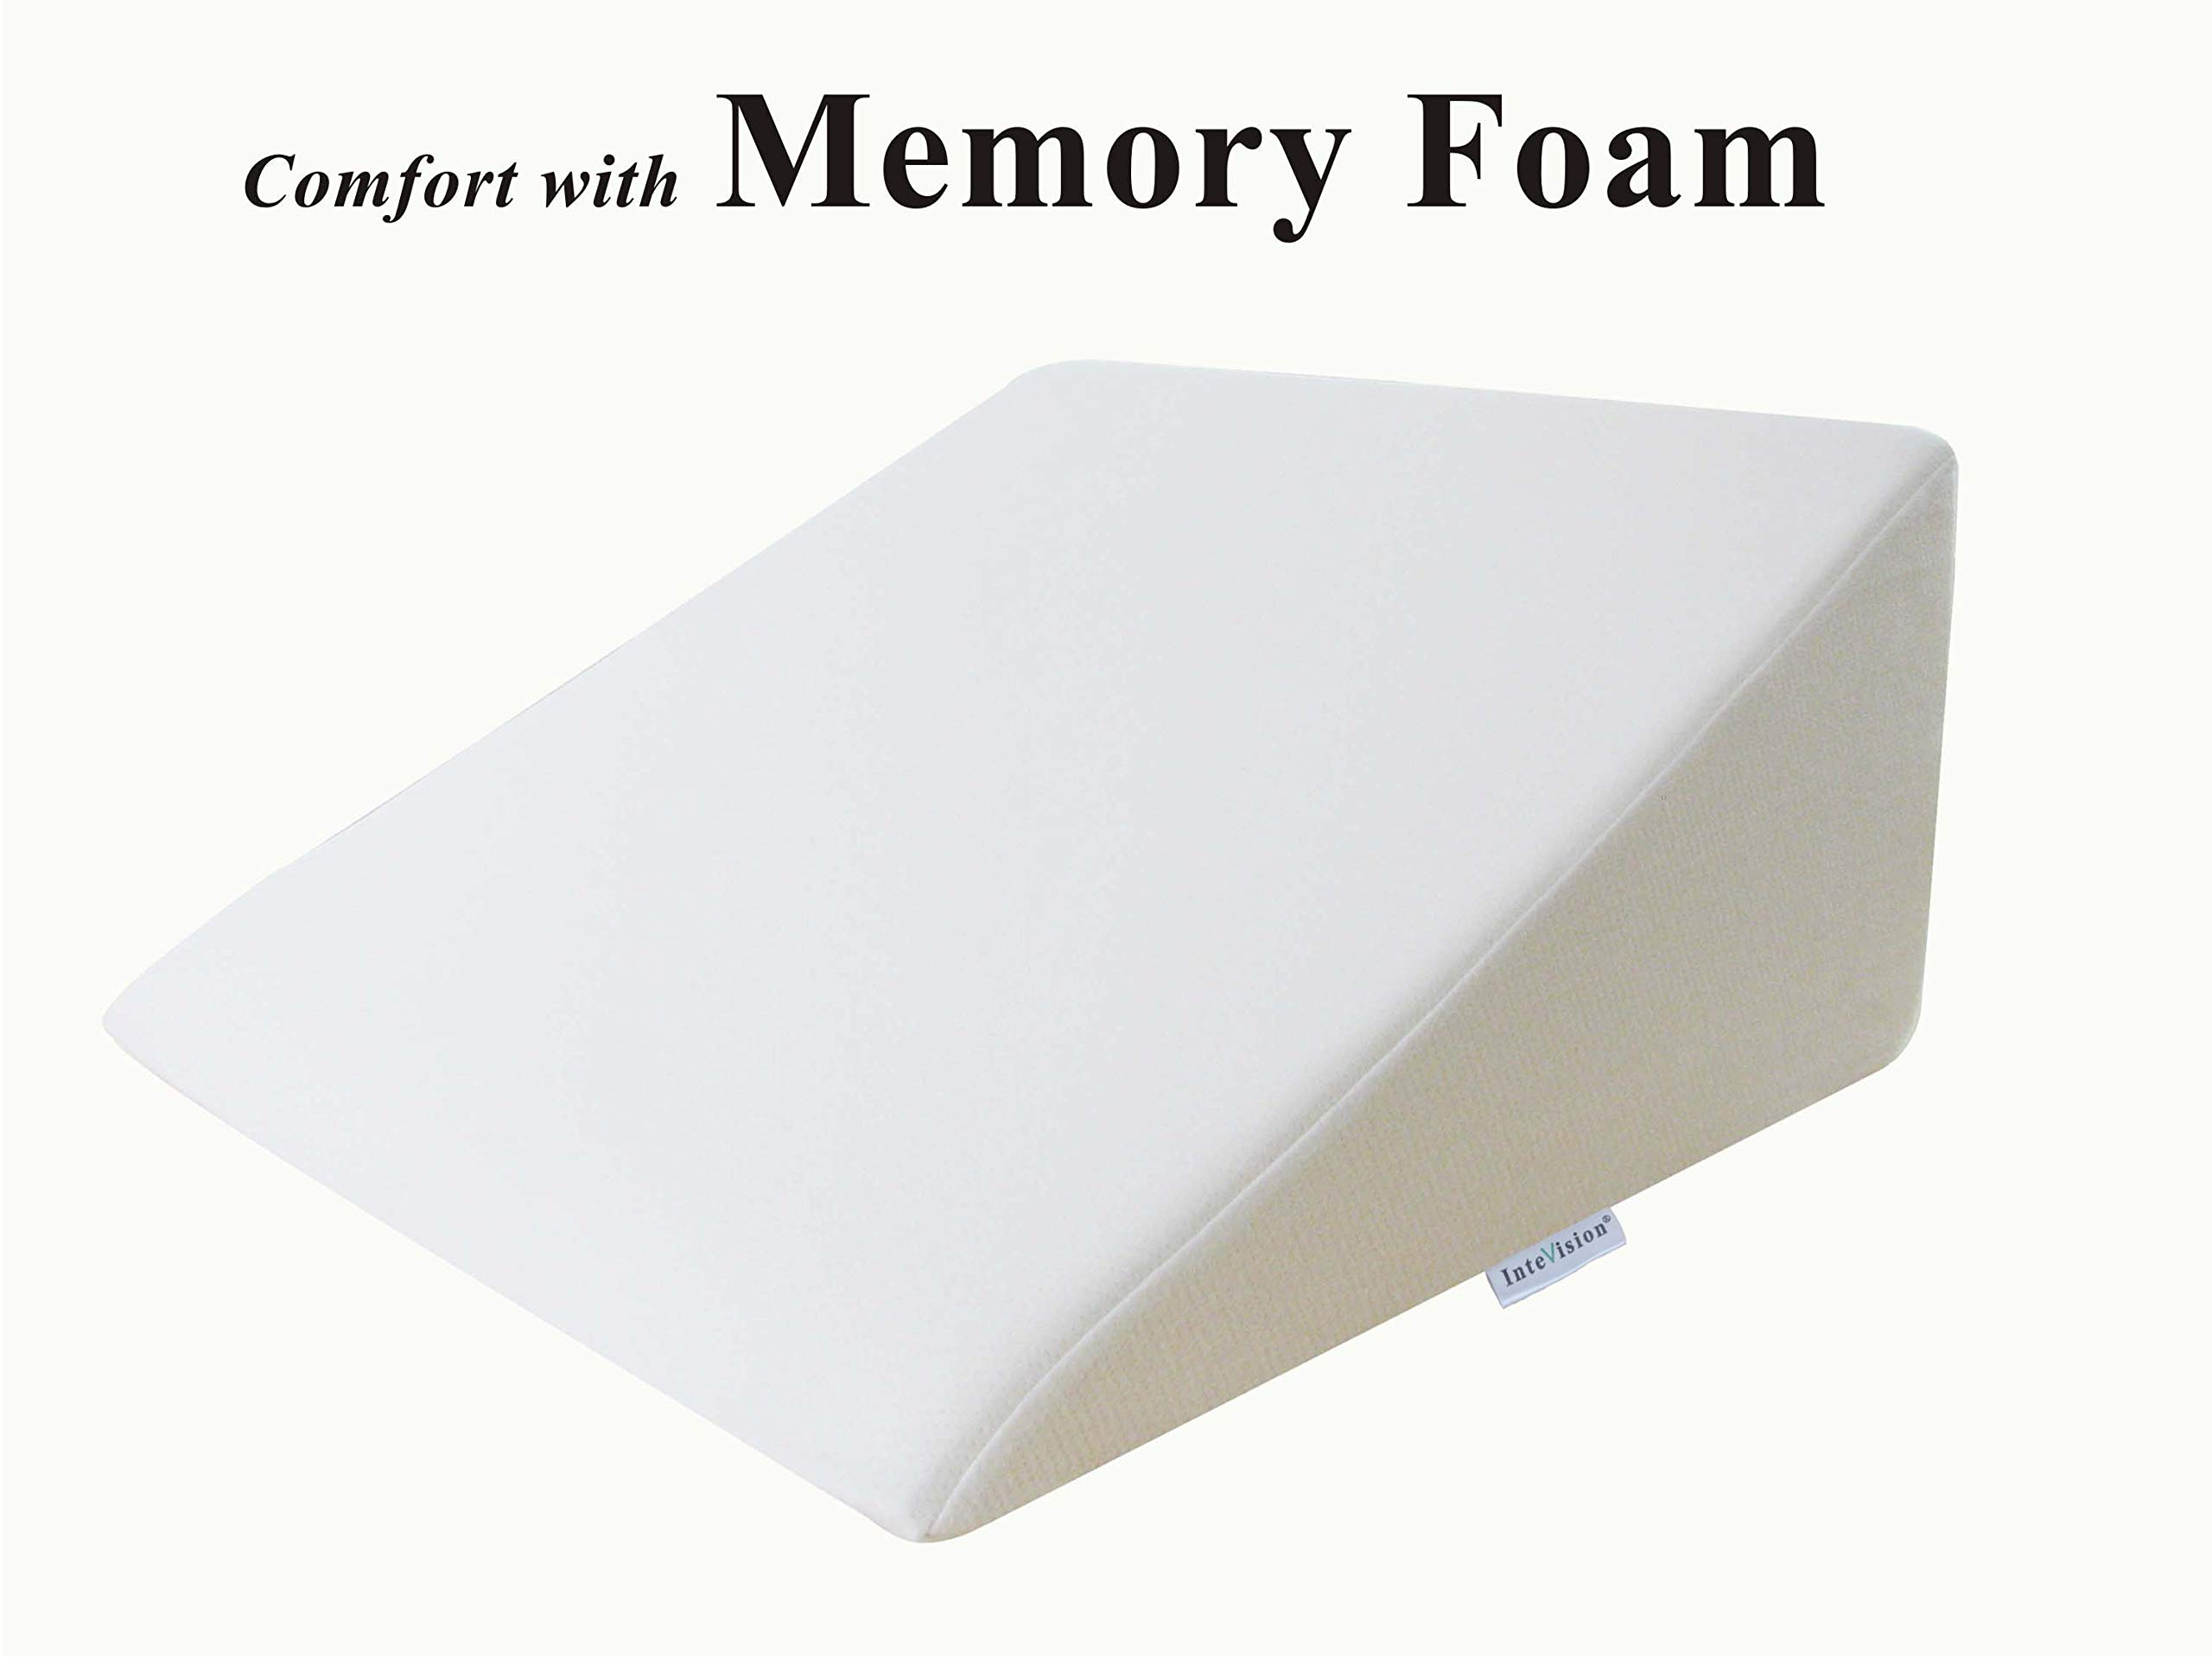 InteVision Foam Wedge Bed Pillow (25'' x 24'' x 12'') with High Quality, Removable Cover